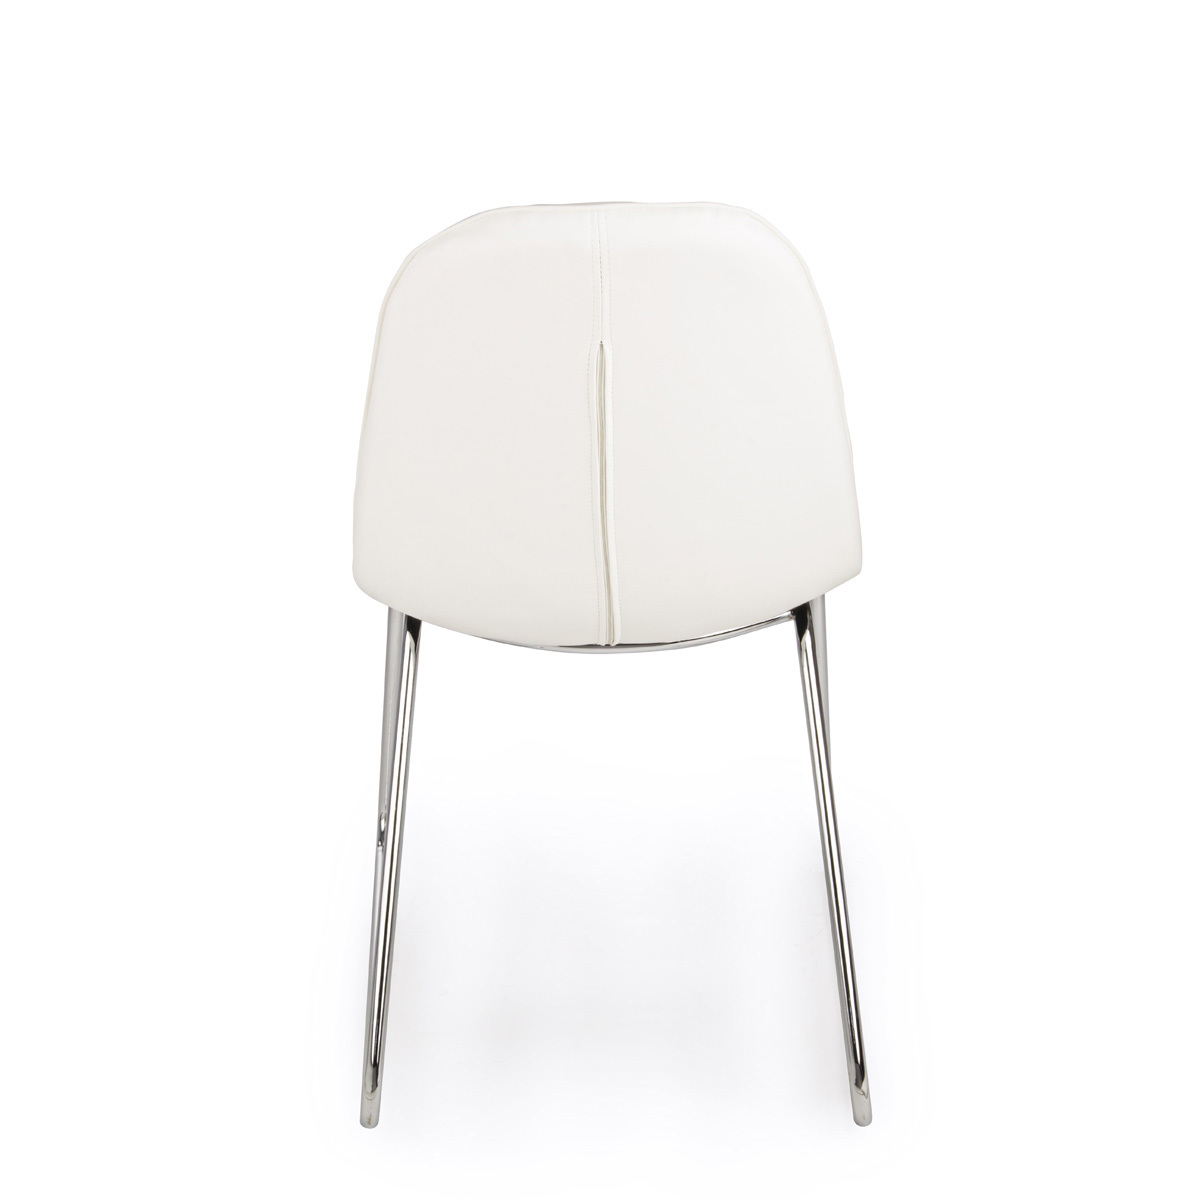 Photos 3: Bizzotto Chair in metal and eco-leather - white 0731662